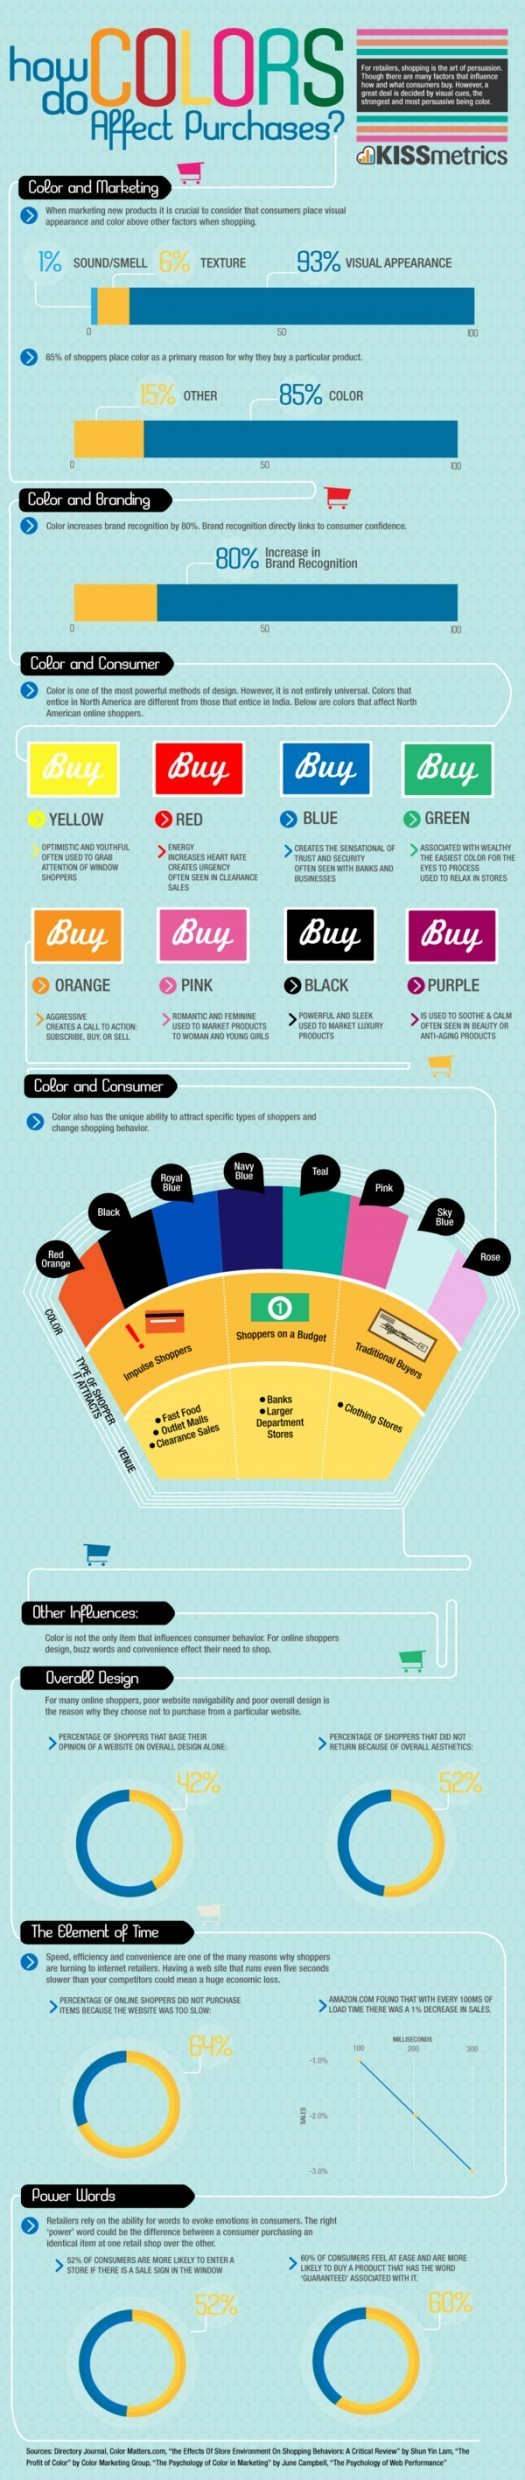 Color's Influence on Buying Behavior